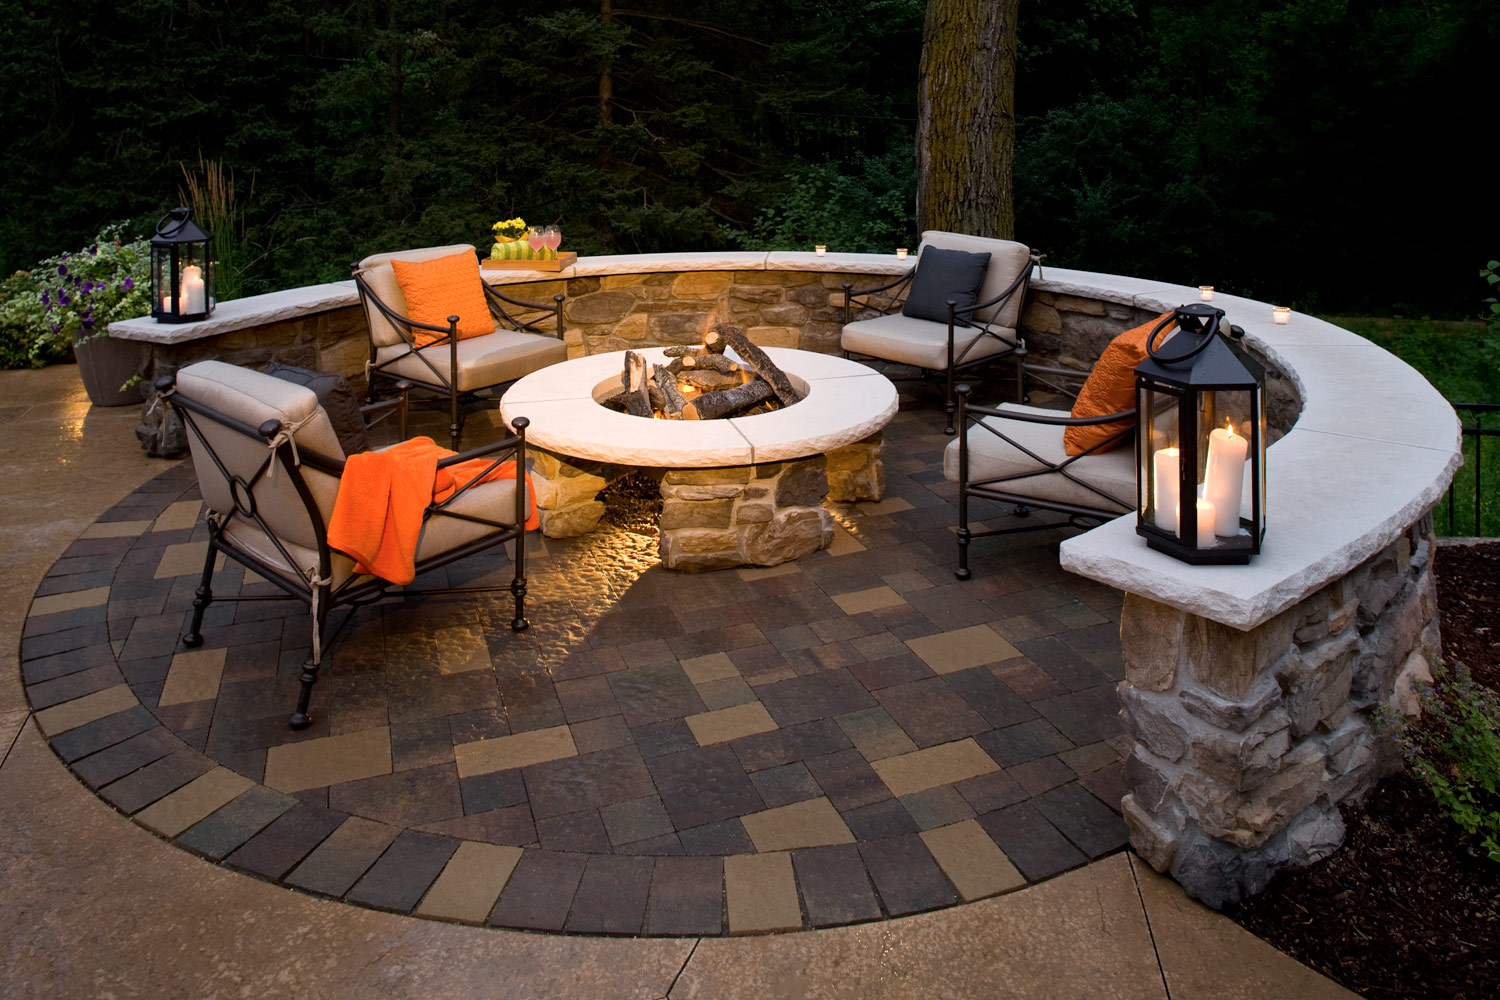 16' circular pave patio with a gas fire pit